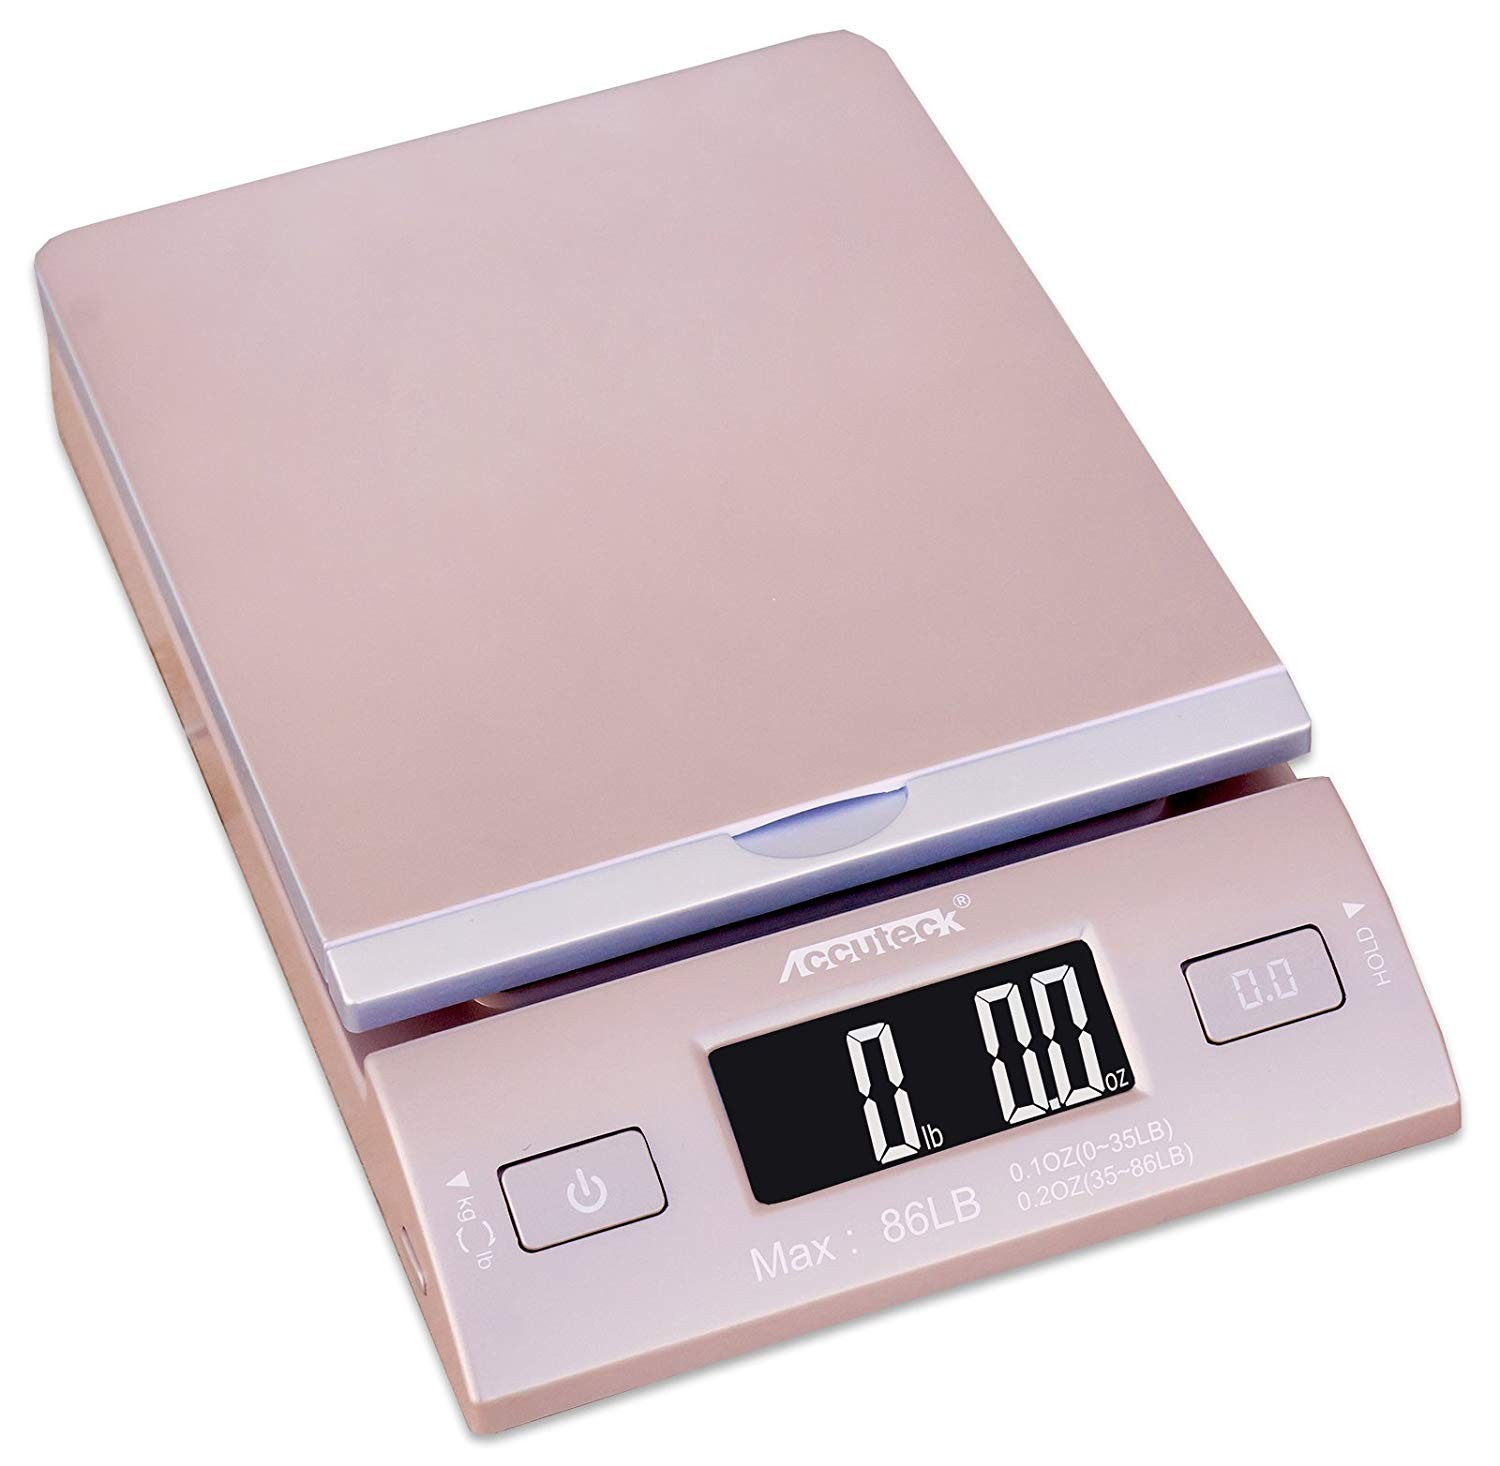 ACCUTECK 86 Lbs Digital Postal Scale Shipping Scale